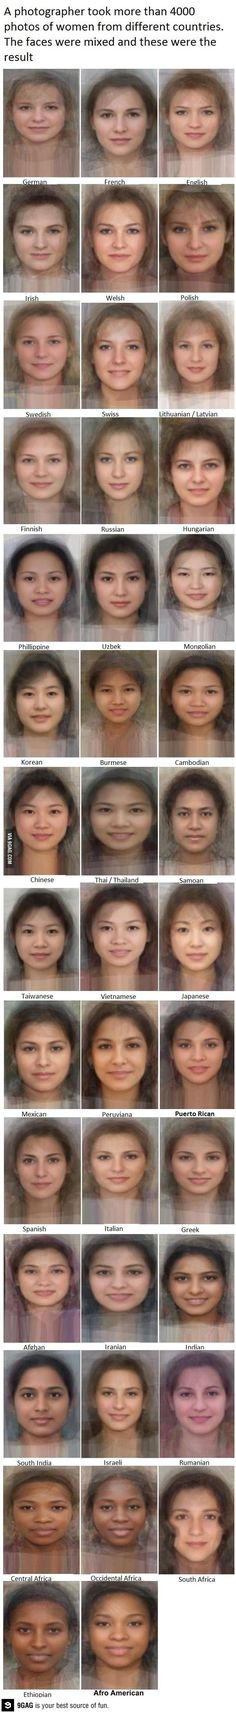 Average face from women from different countries -interesting